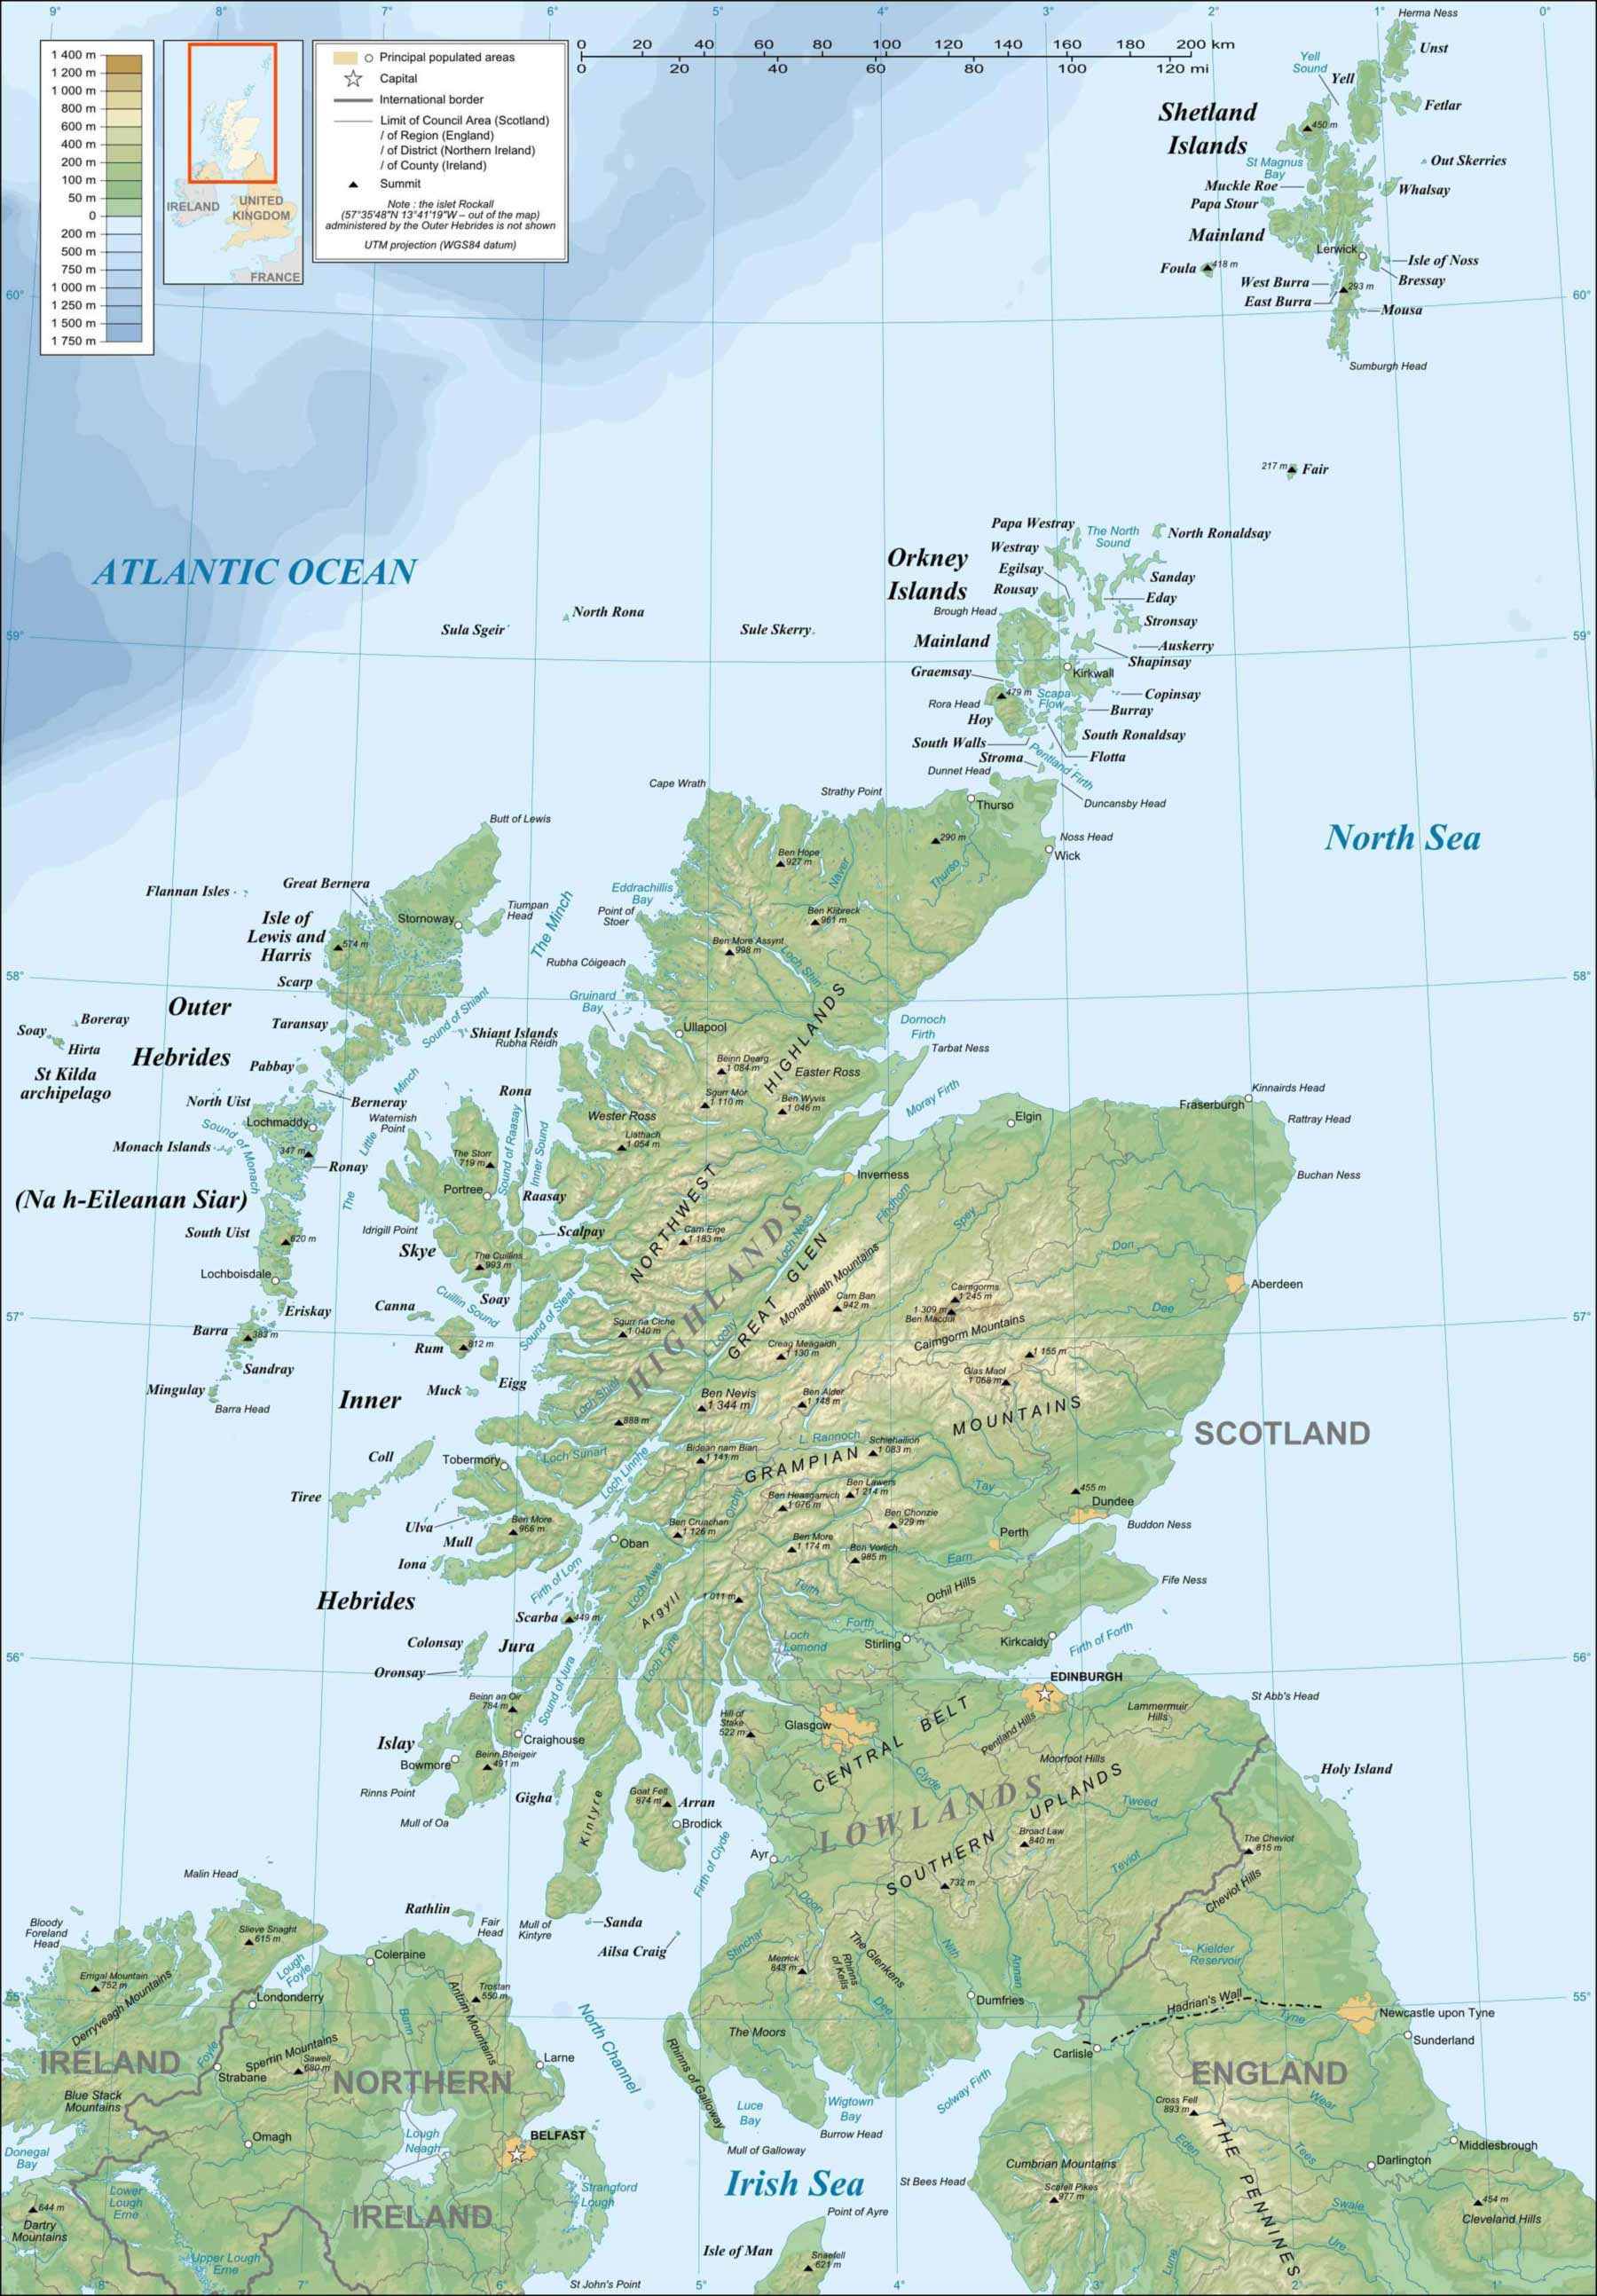 Scotland Topographic Map Mapsofnet - Topographic map of united kingdom